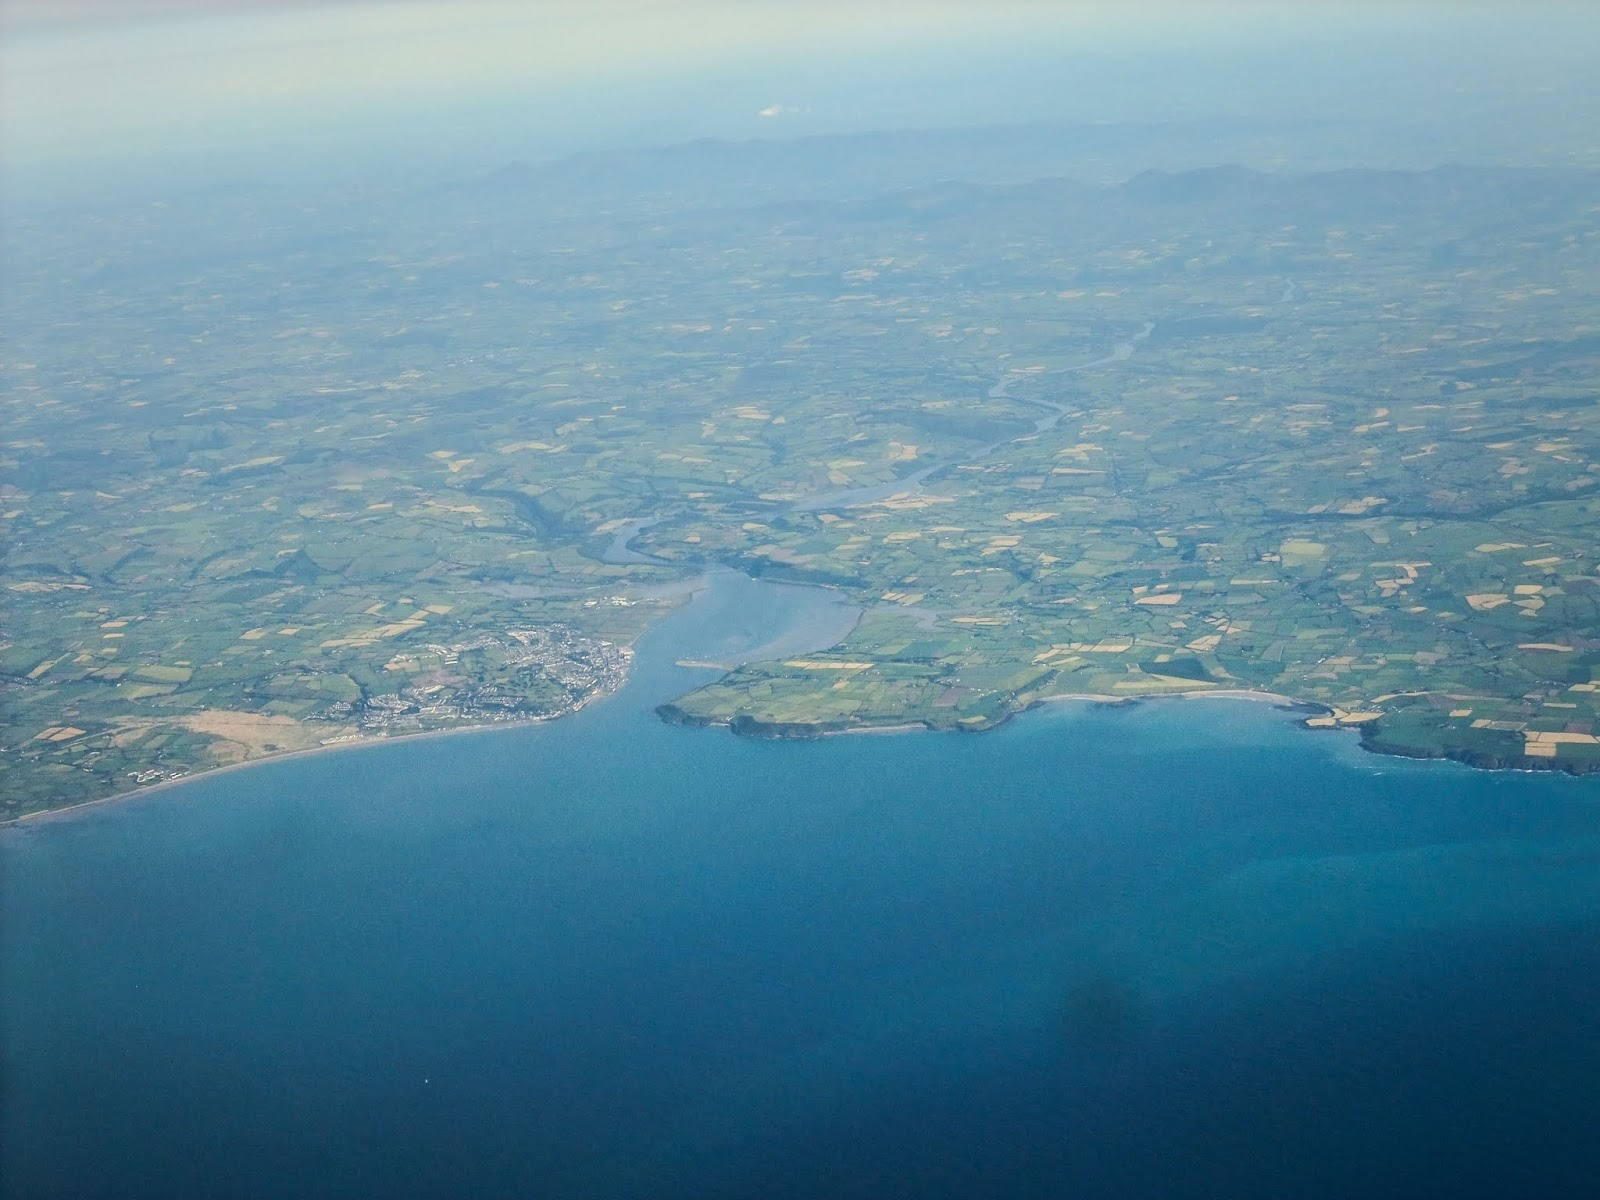 Youghal Bay captured from a plane.